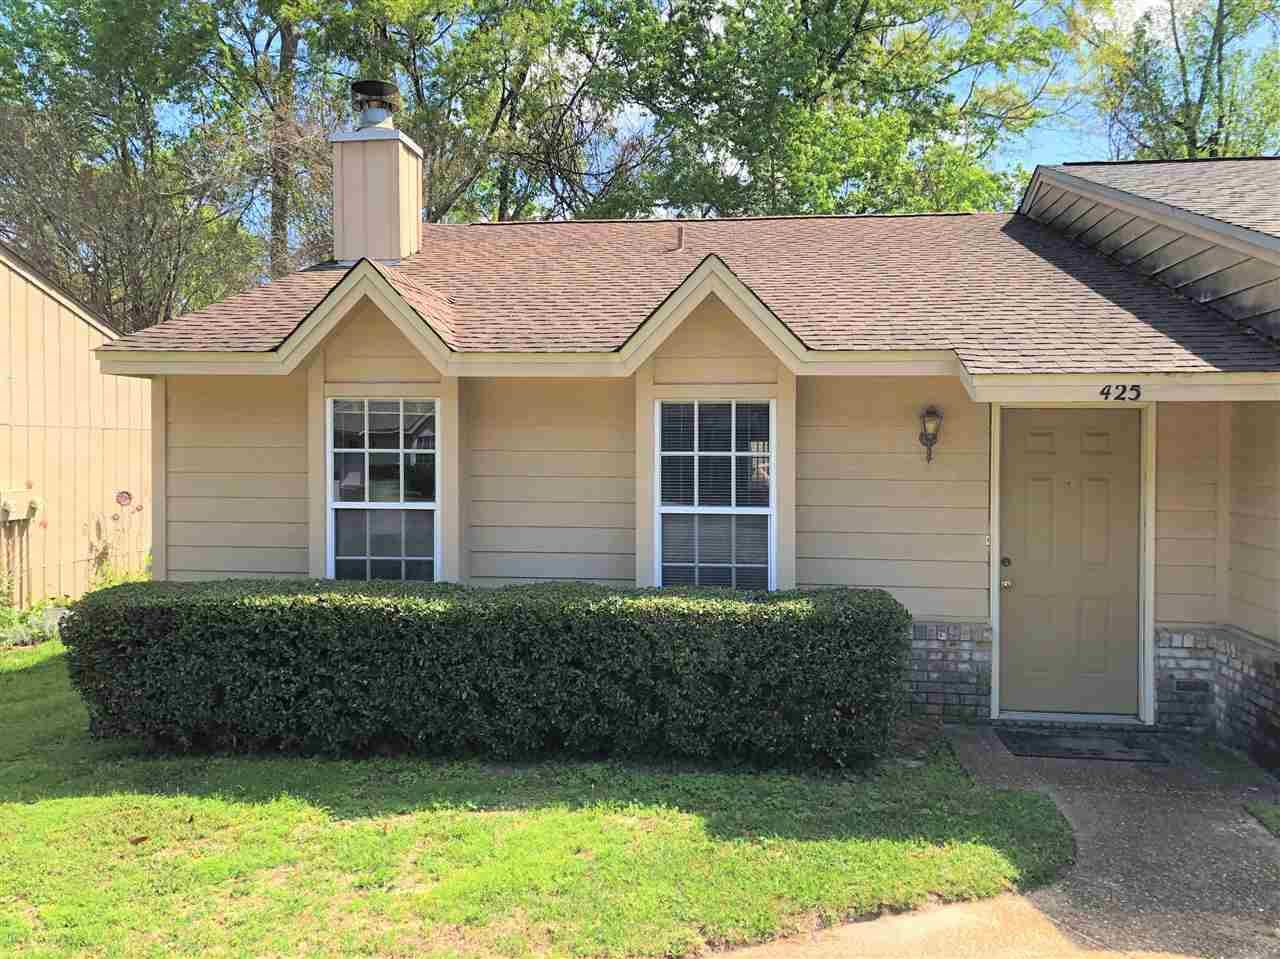 Photo of 425 High Point Lane, TALLAHASSEE, FL 32301 (MLS # 317075)